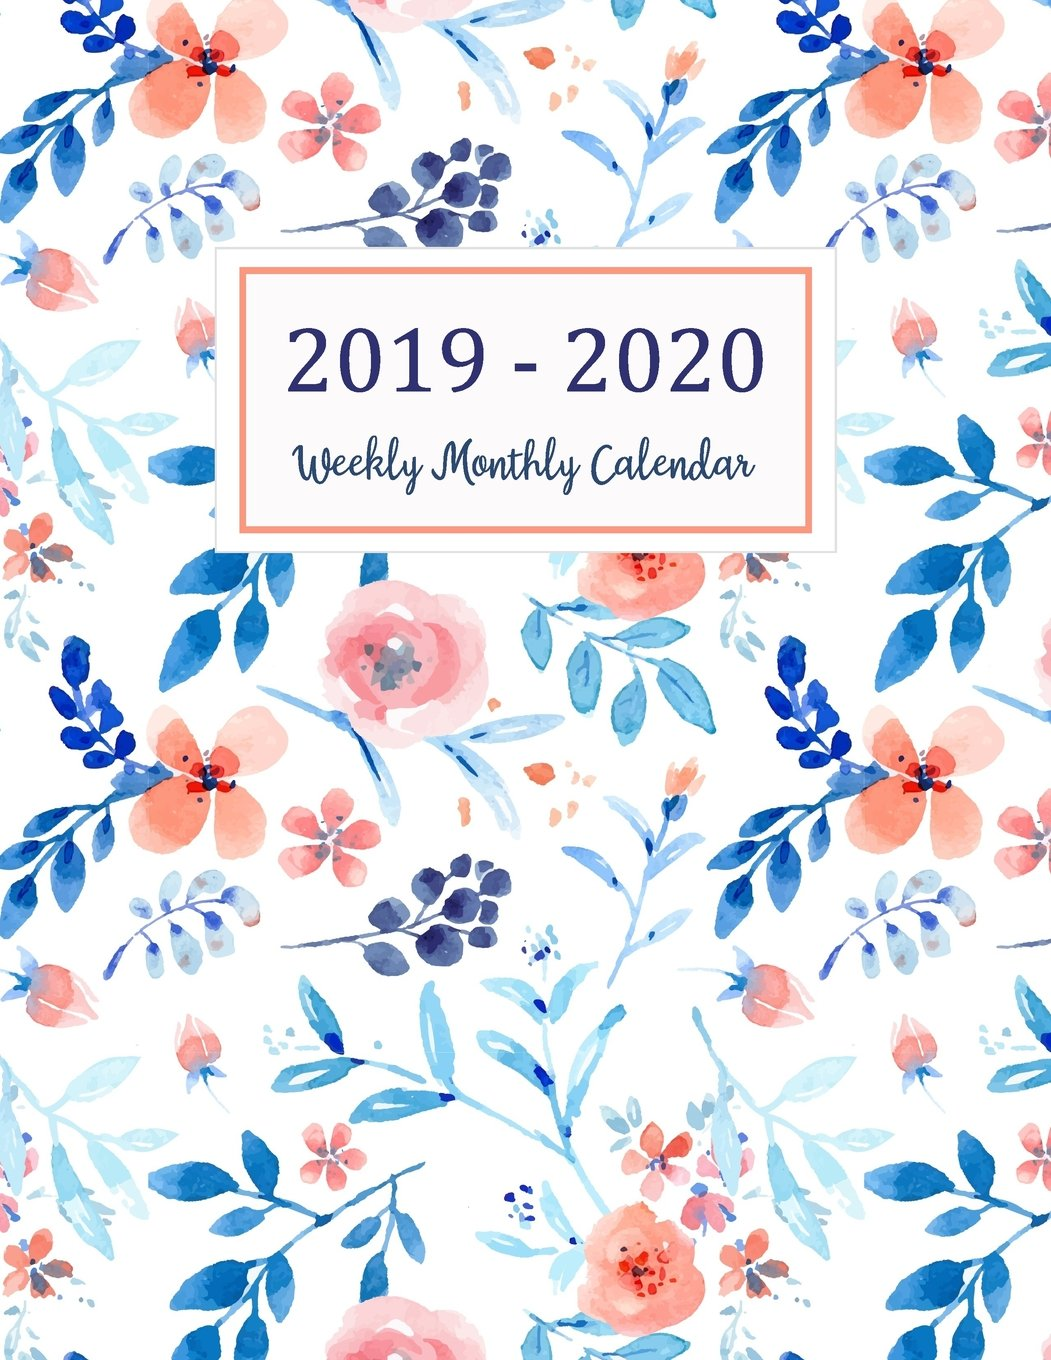 2020 December Monday Thru Friday Calendar 2019 2020 Weekly Monthly Calendar: Two Years   Daily Weekly